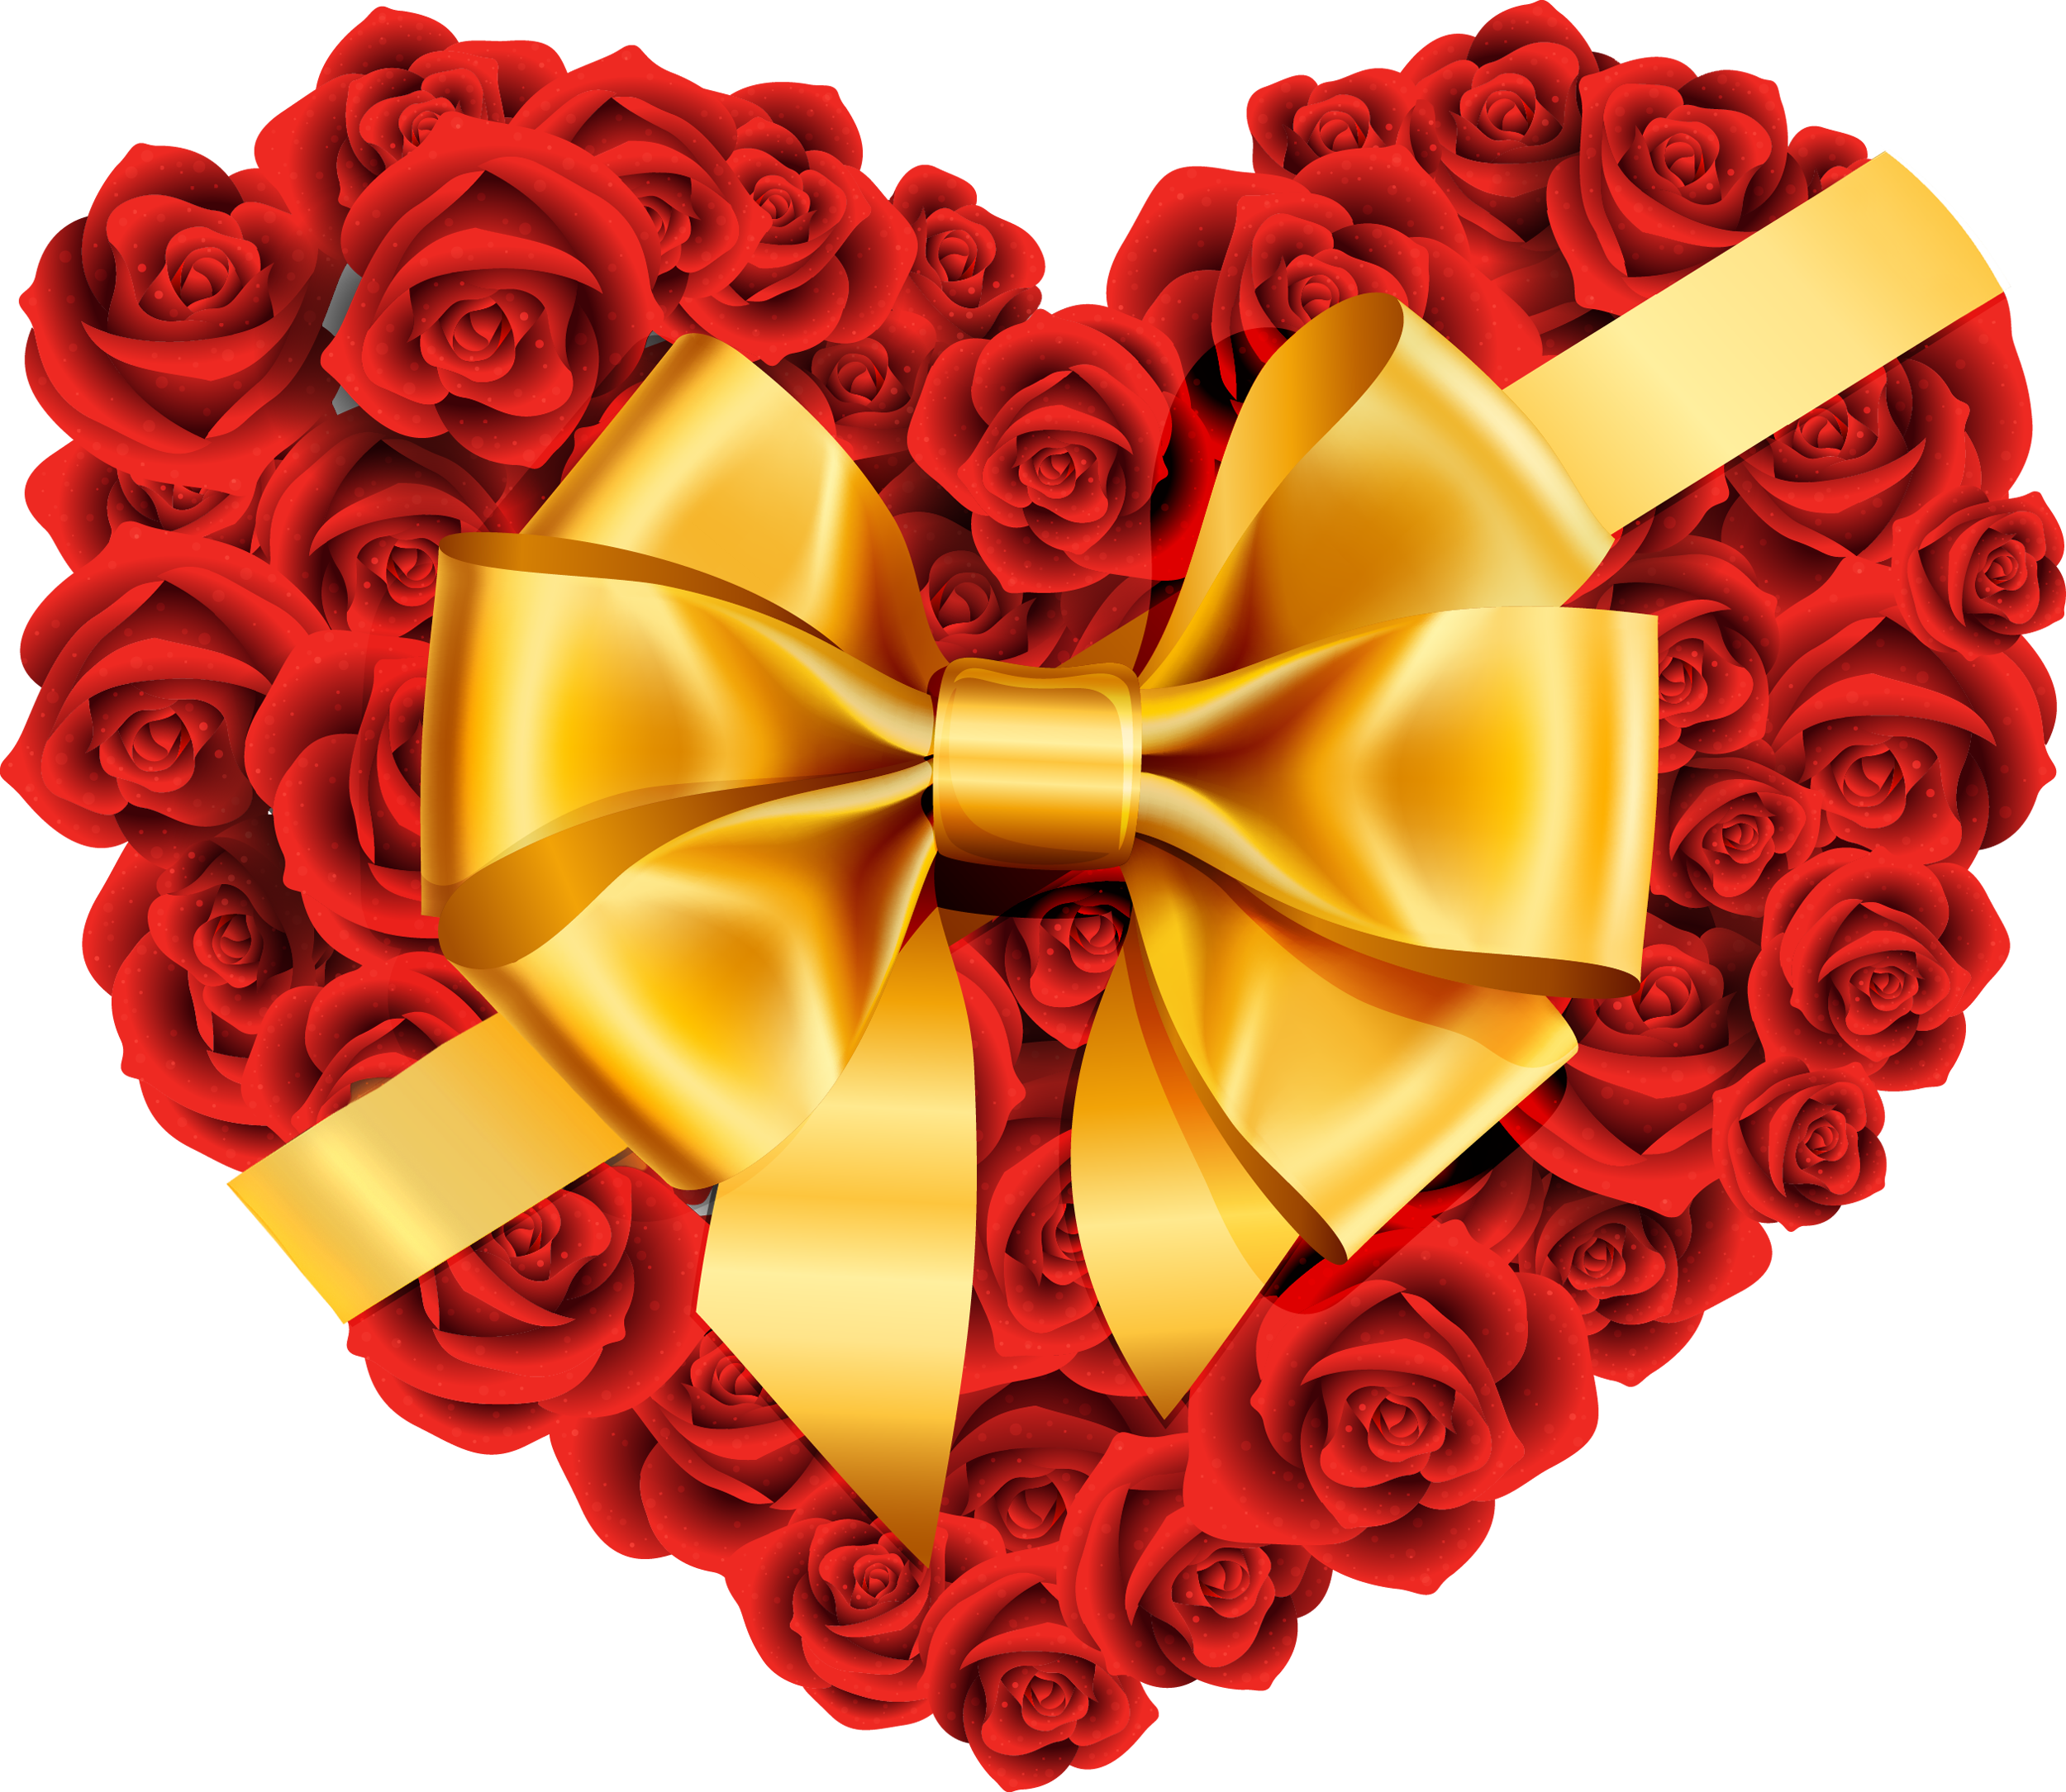 Large rose with gold. Clipart heart plant